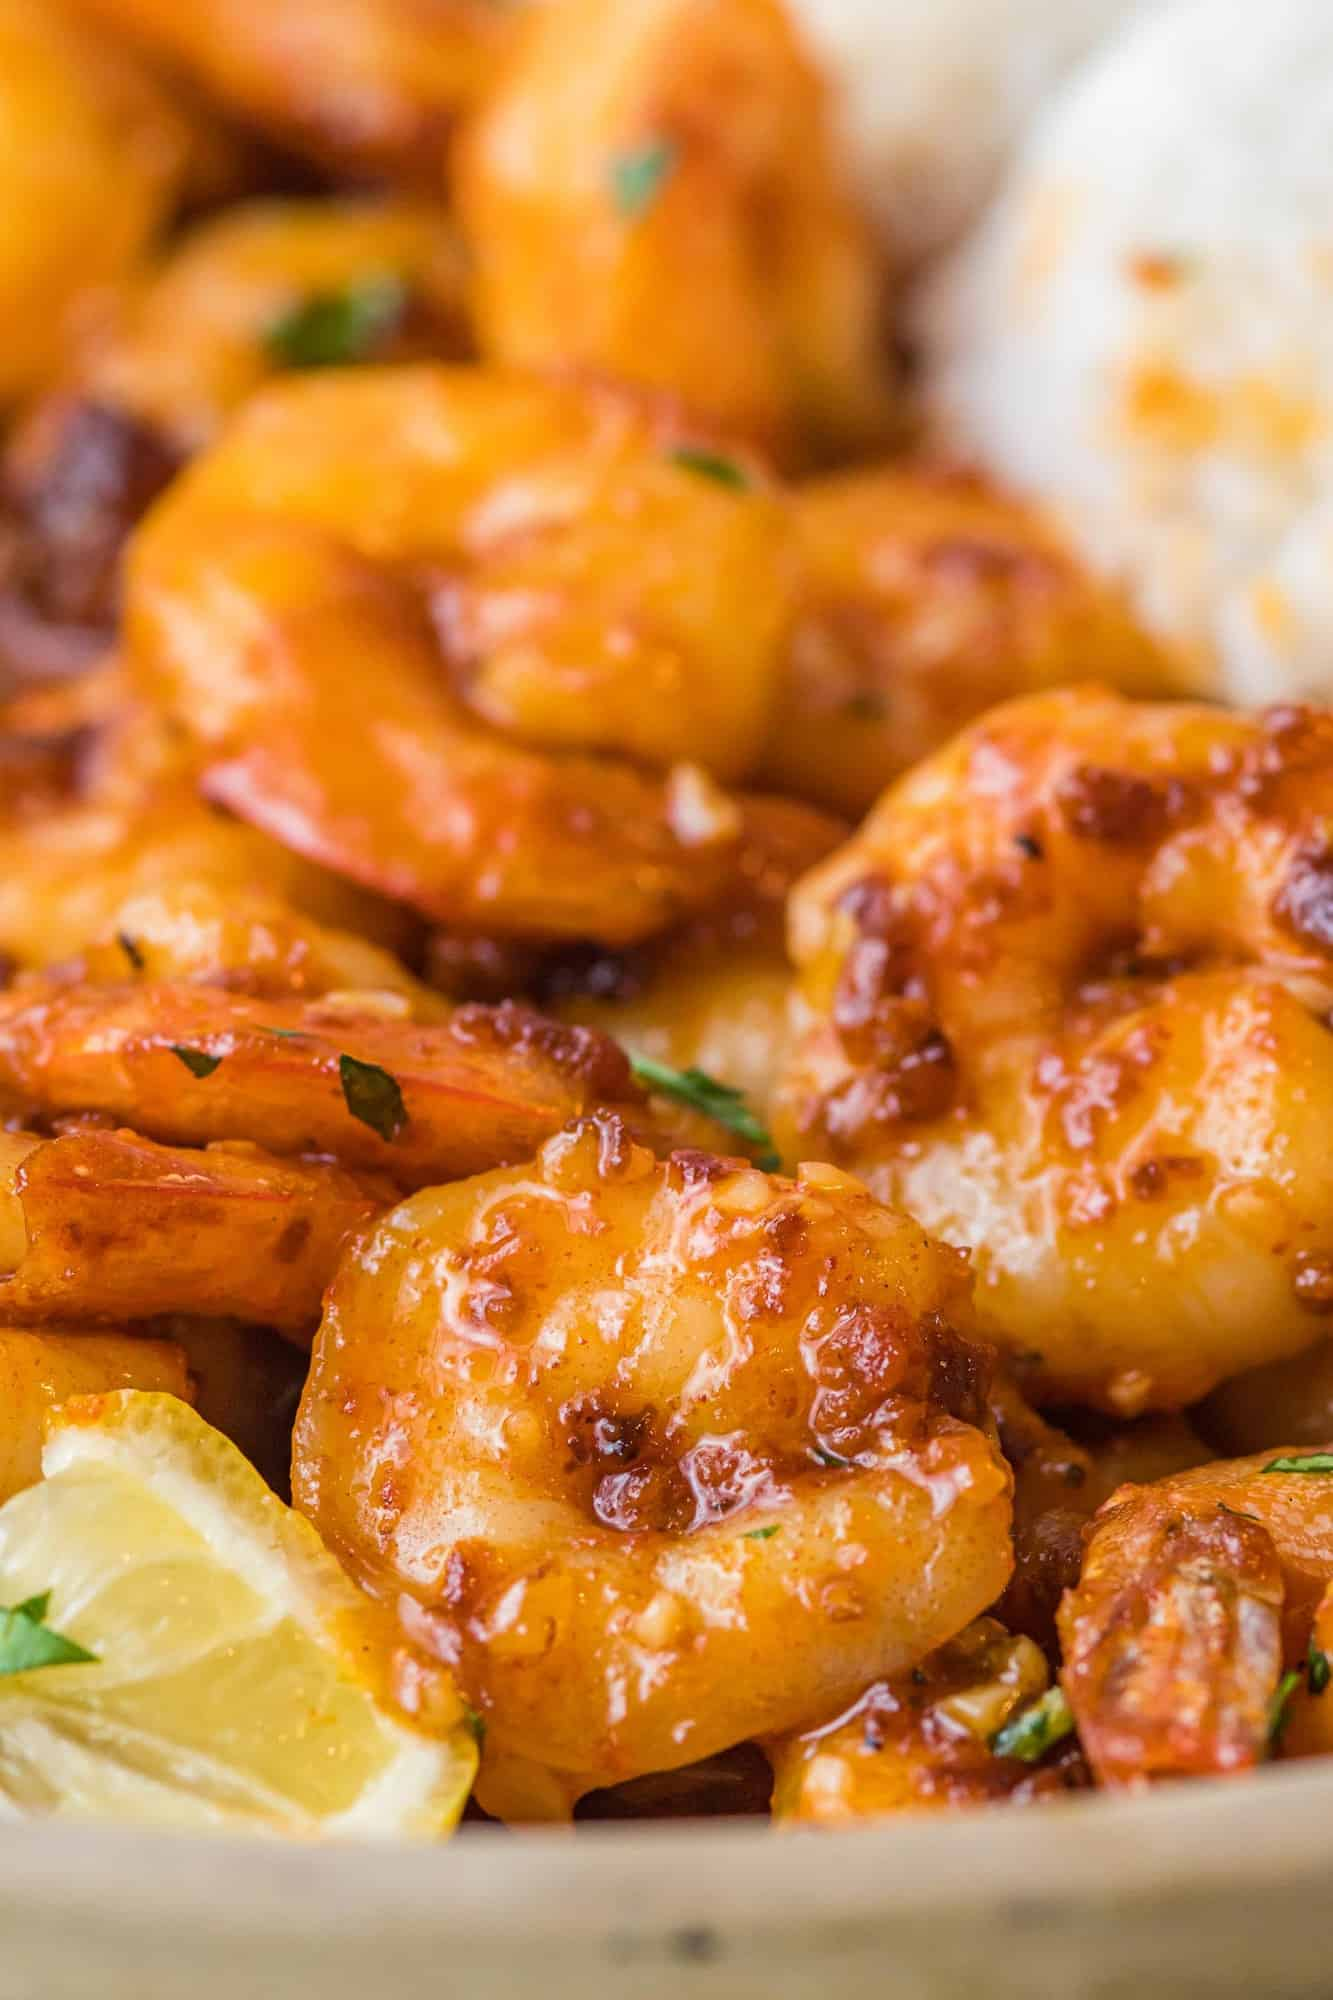 Close up of spicy honey garlic shrimp with lemon wedges and rice.